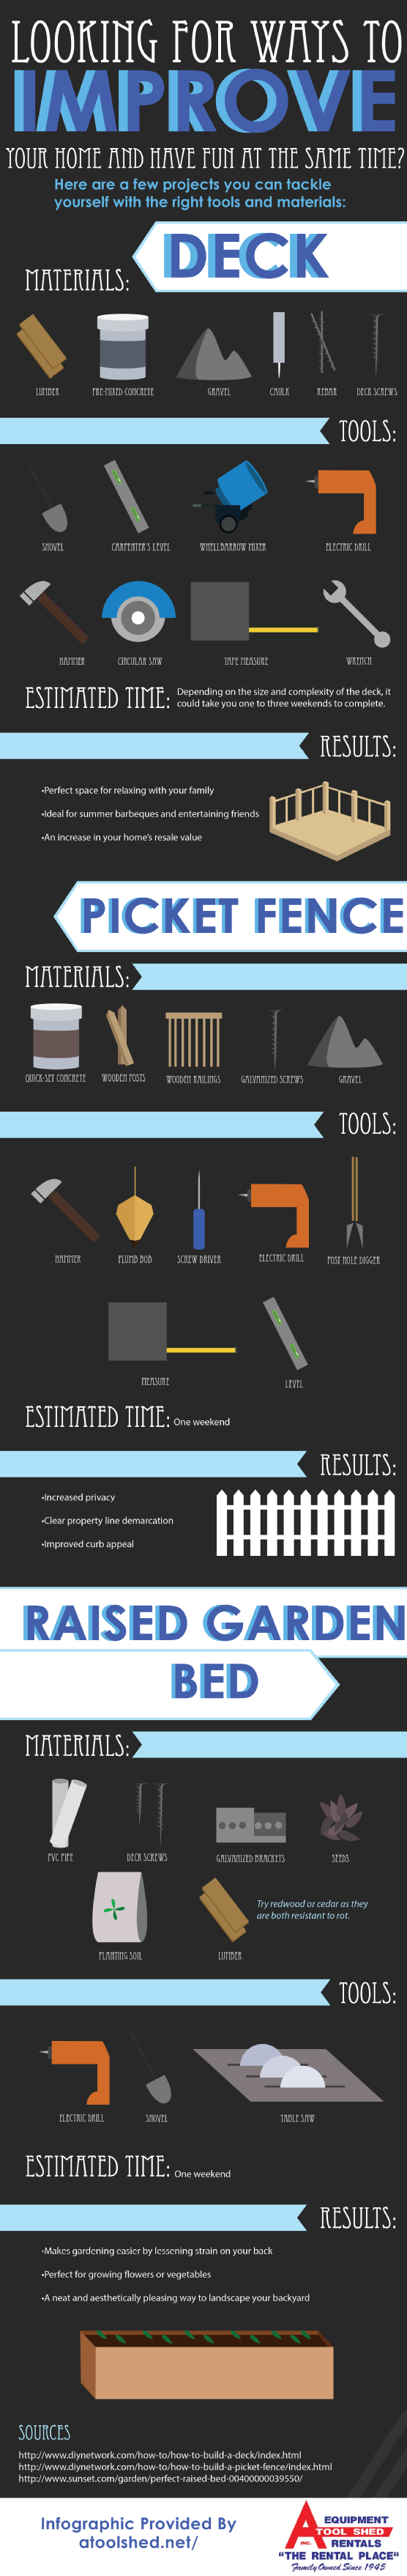 Home-Improvement-Projects-Infographic